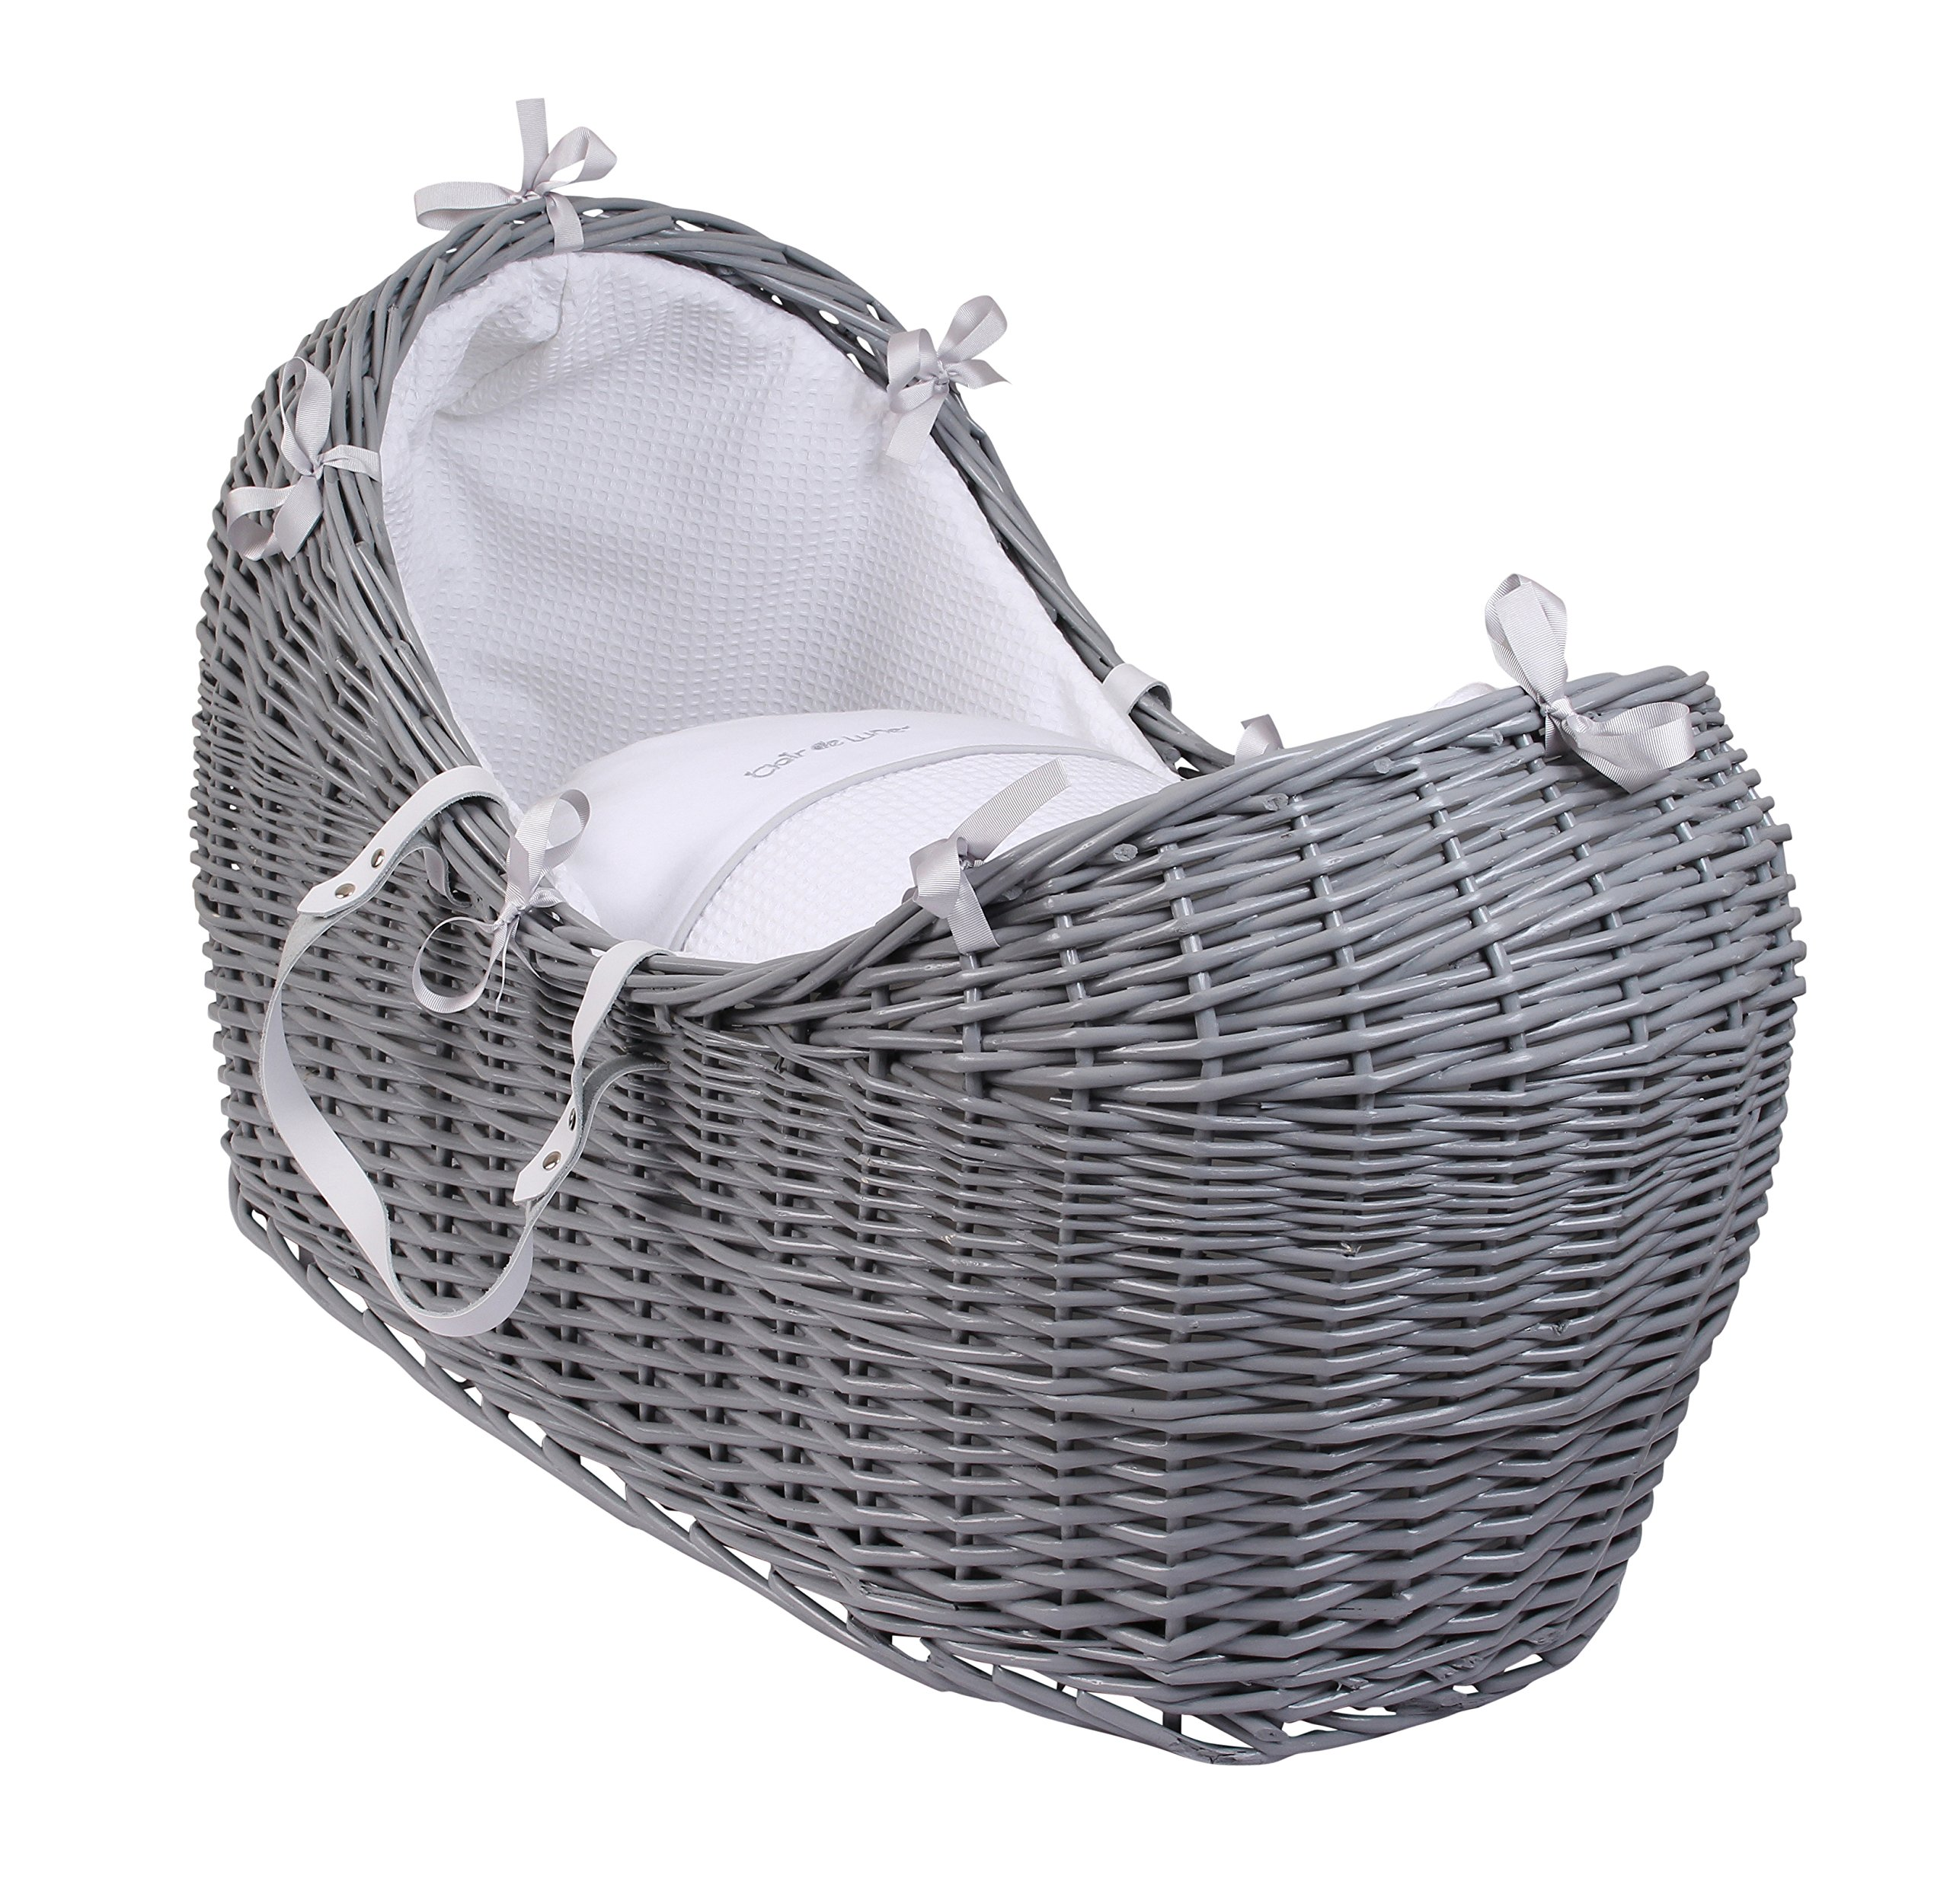 Clair de Lune Noah Pod (Silver Lining, Grey)  Made in the UK 100% Cotton Waffle Available in various colour Wicker Baskets 1